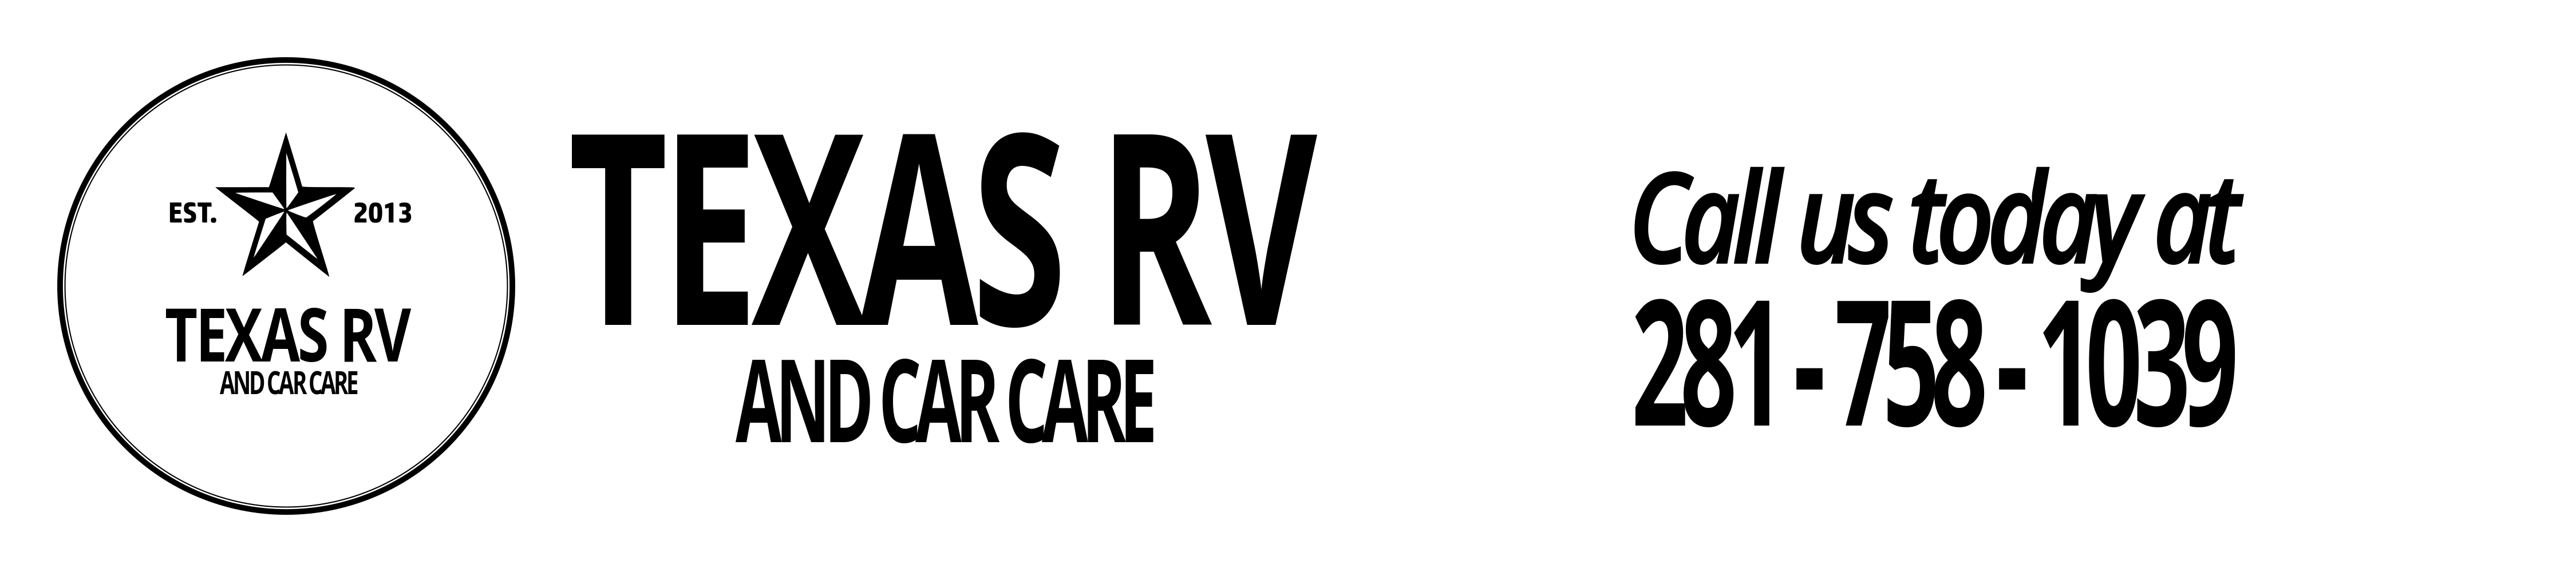 Texas RV and Car Care